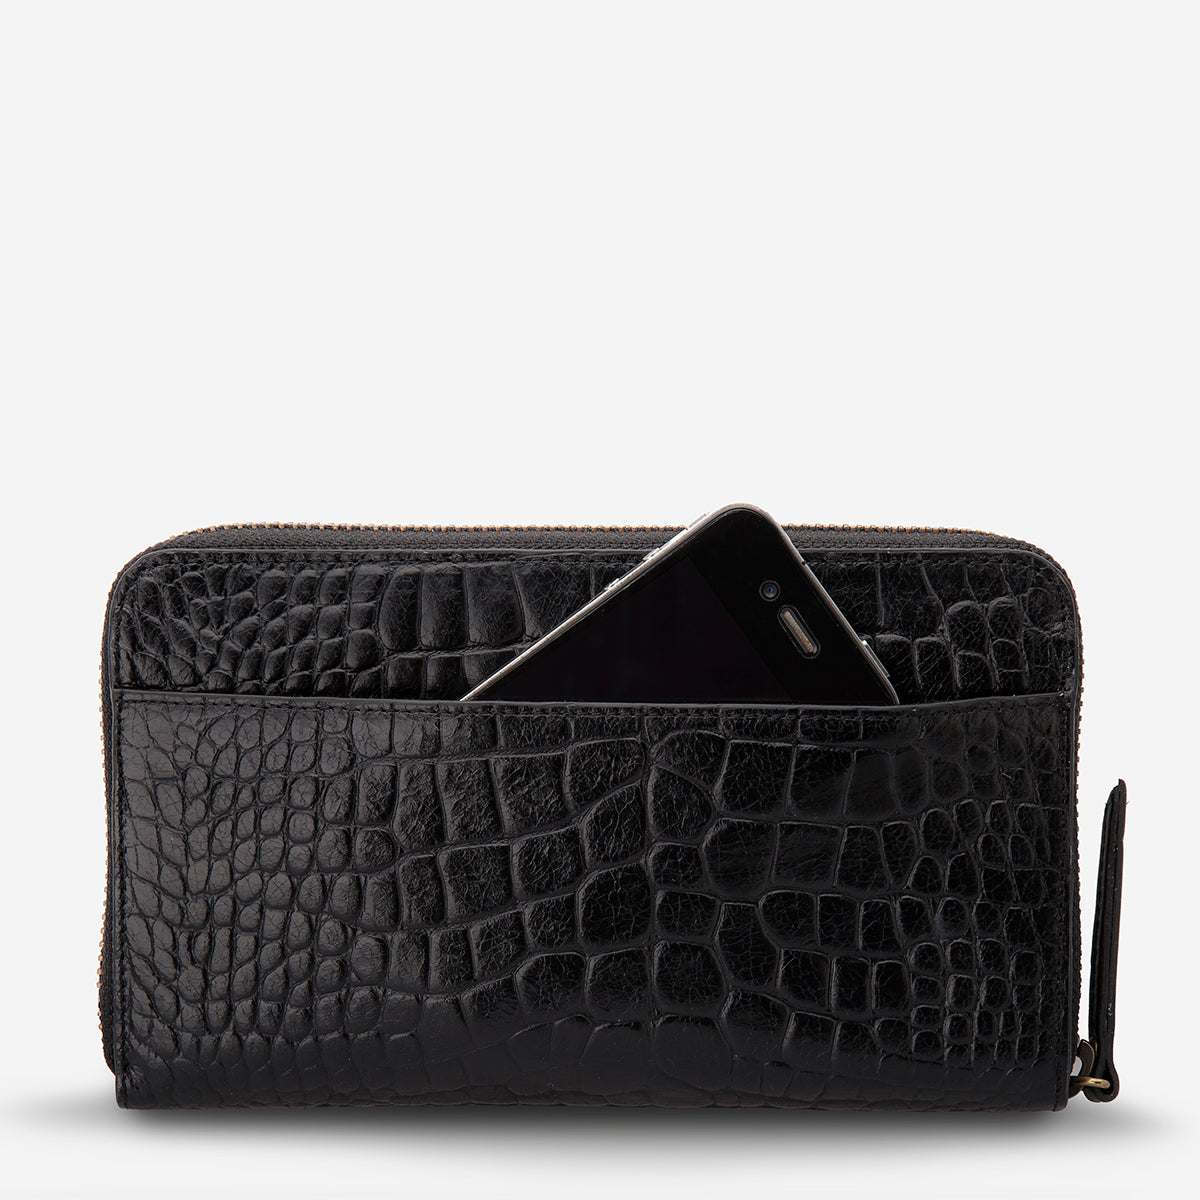 Status Anxiety Delilah Travel Wallet - Black Croc